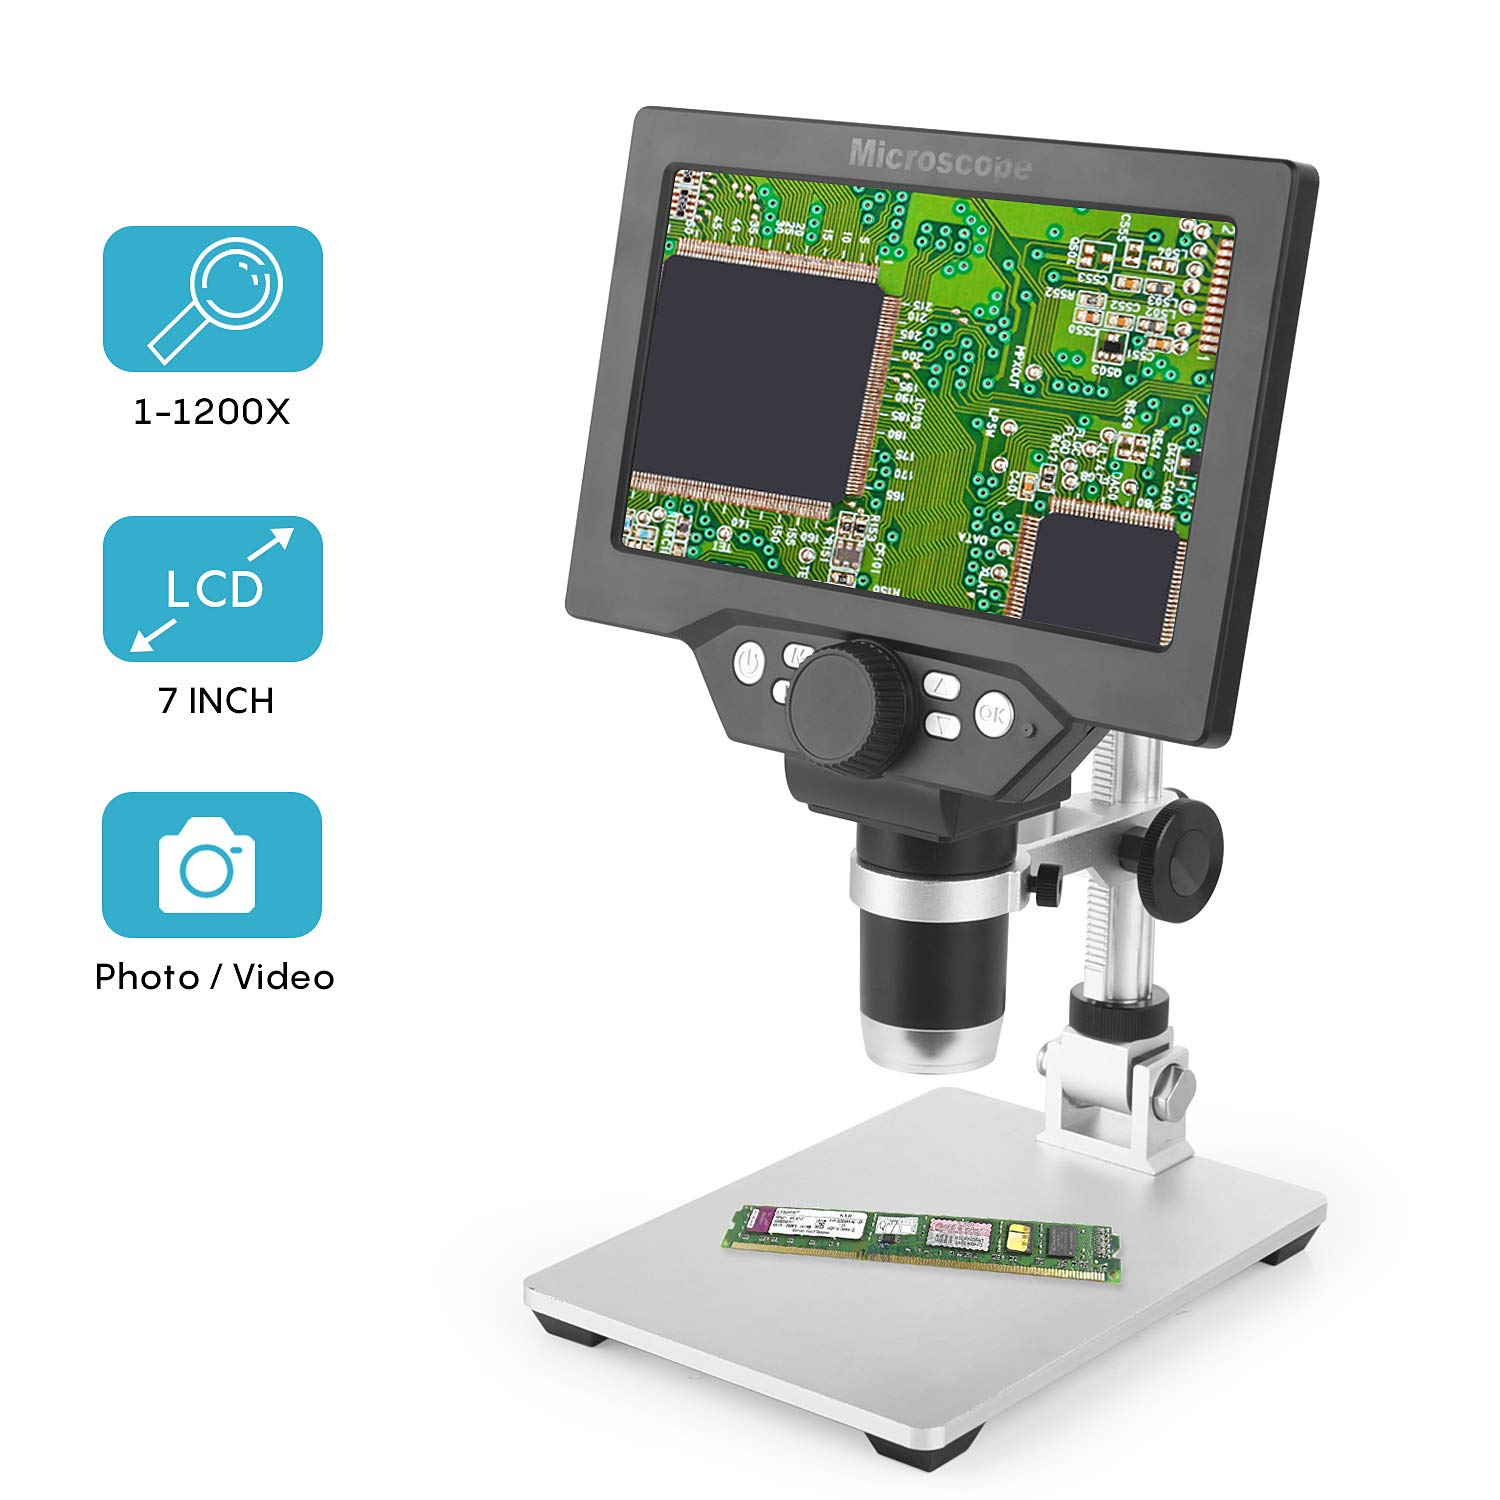 LCD Digital Microscope 7 in HD Screen 1200X Magnification Zoom Camera Video Recorder Angle Adjustable Microscope, 8 LED Lights, Built-in 3000 mAh Battery Rechargeable by Amoper